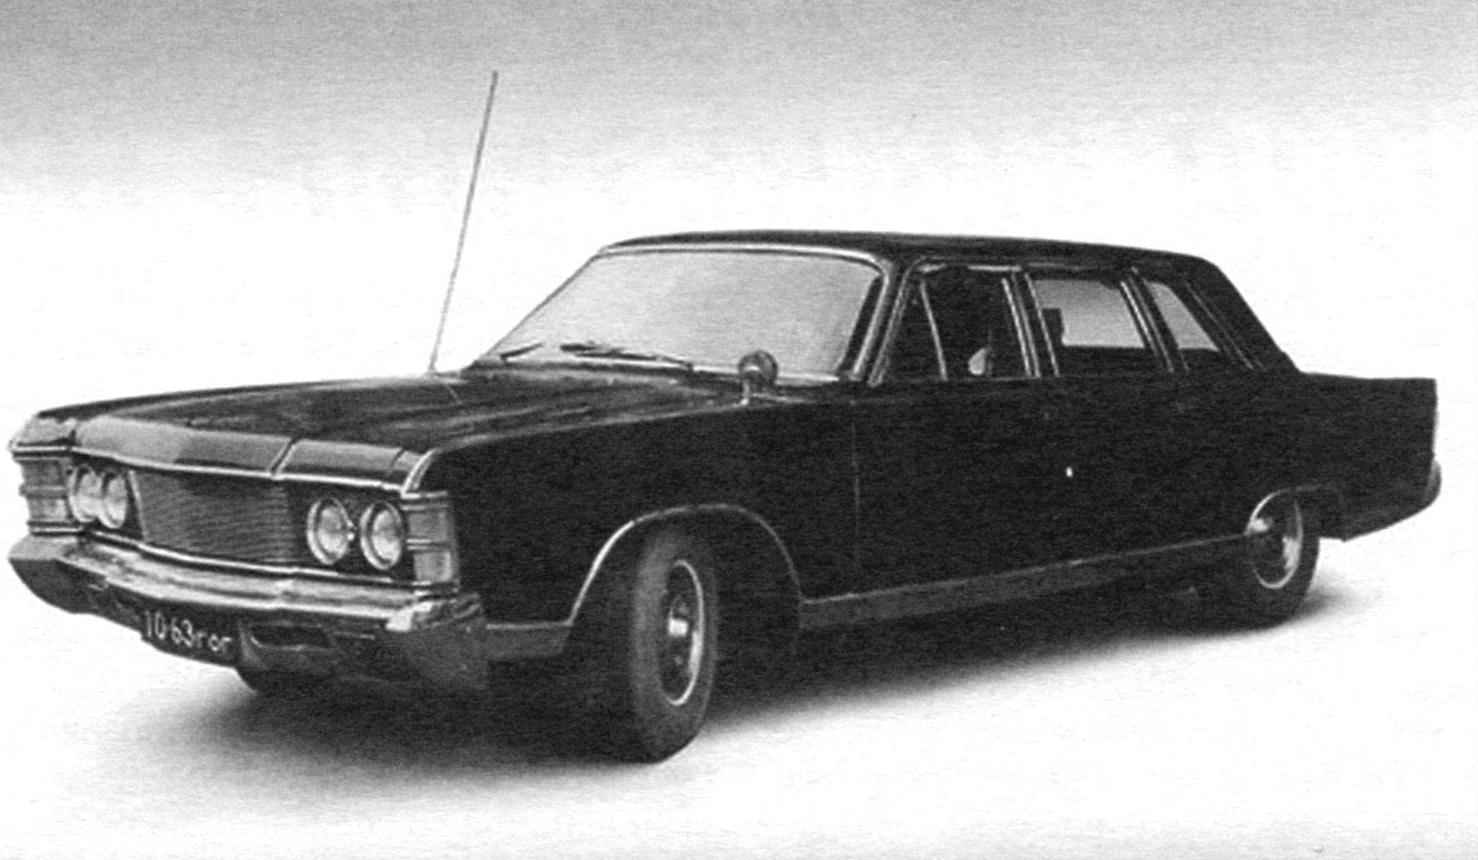 A failed attempt to modify the appearance of GAZ-14